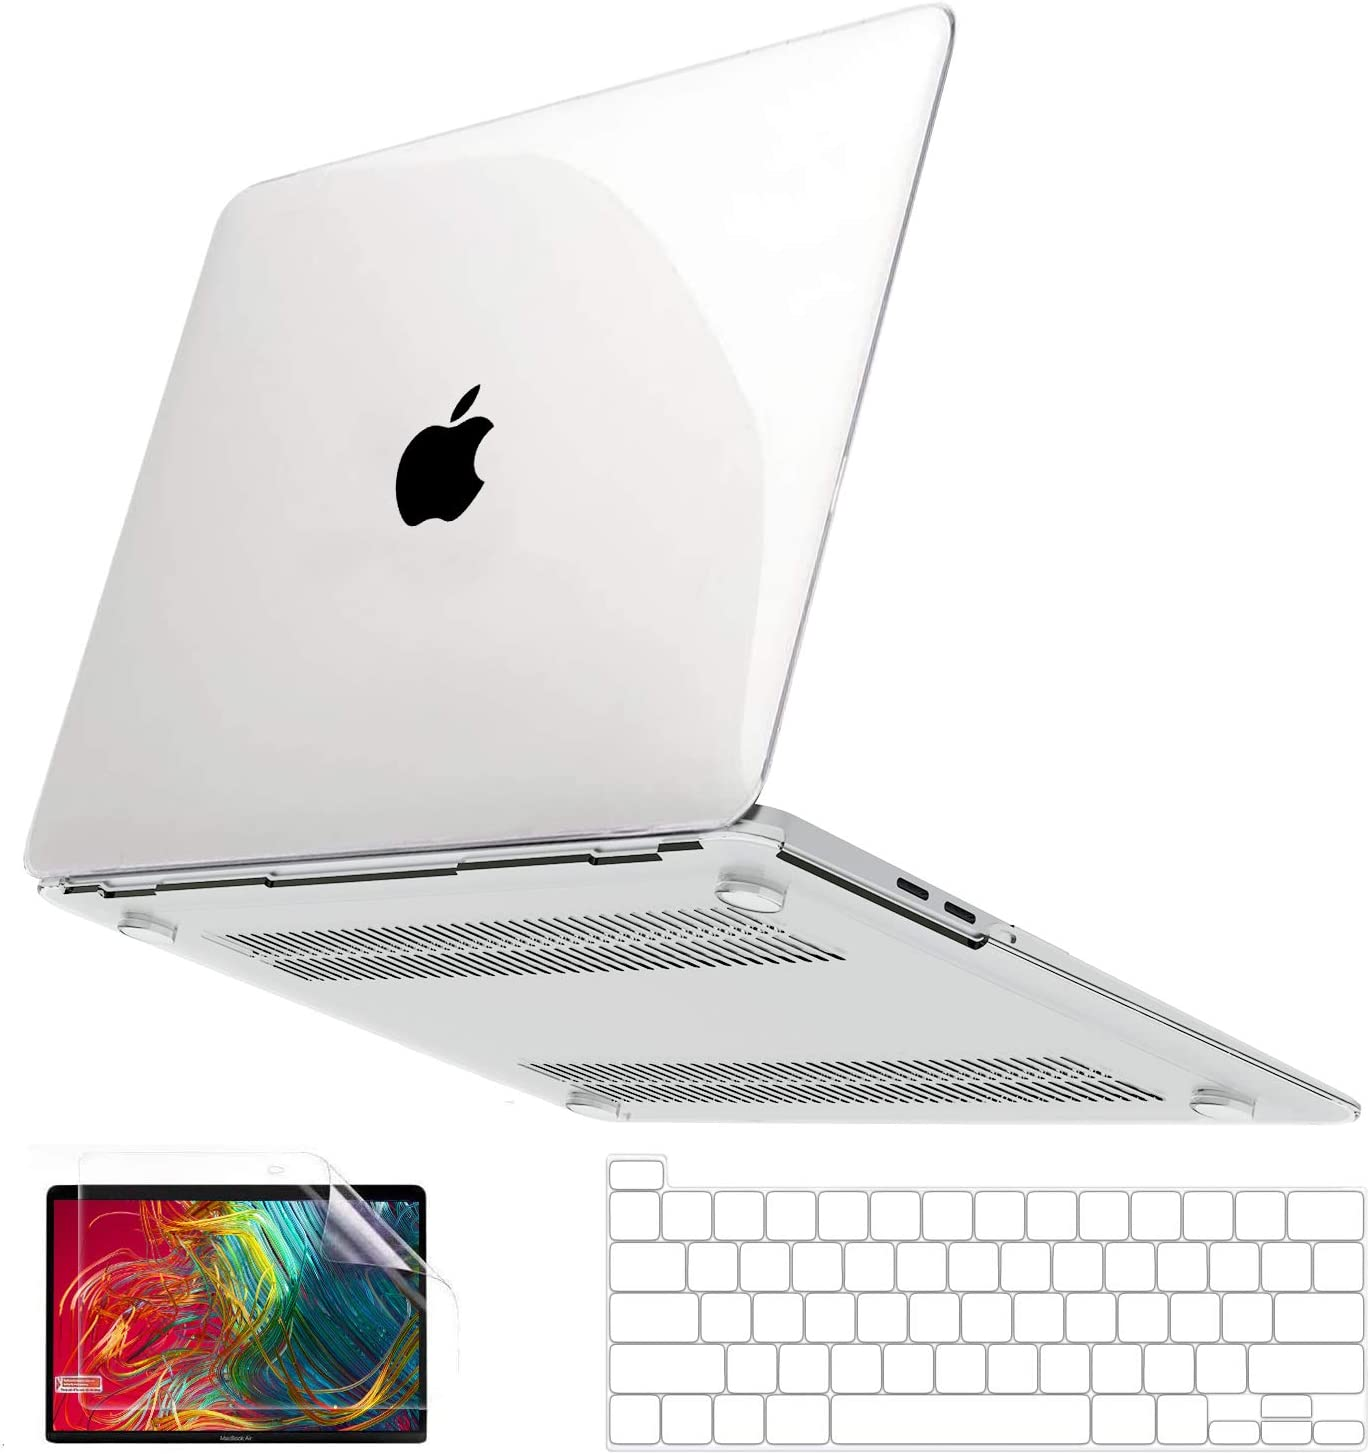 Keyboard Skin Dust Plug,Crystal Transparent Se7enline Clear MacBook Pro 13 Case 2020//2019//2018//2017//2016 Laptop Cover for MacBook Pro 13/'/' Model A2251//A2289//A1989//A2159 with Sleeve Screen Protector